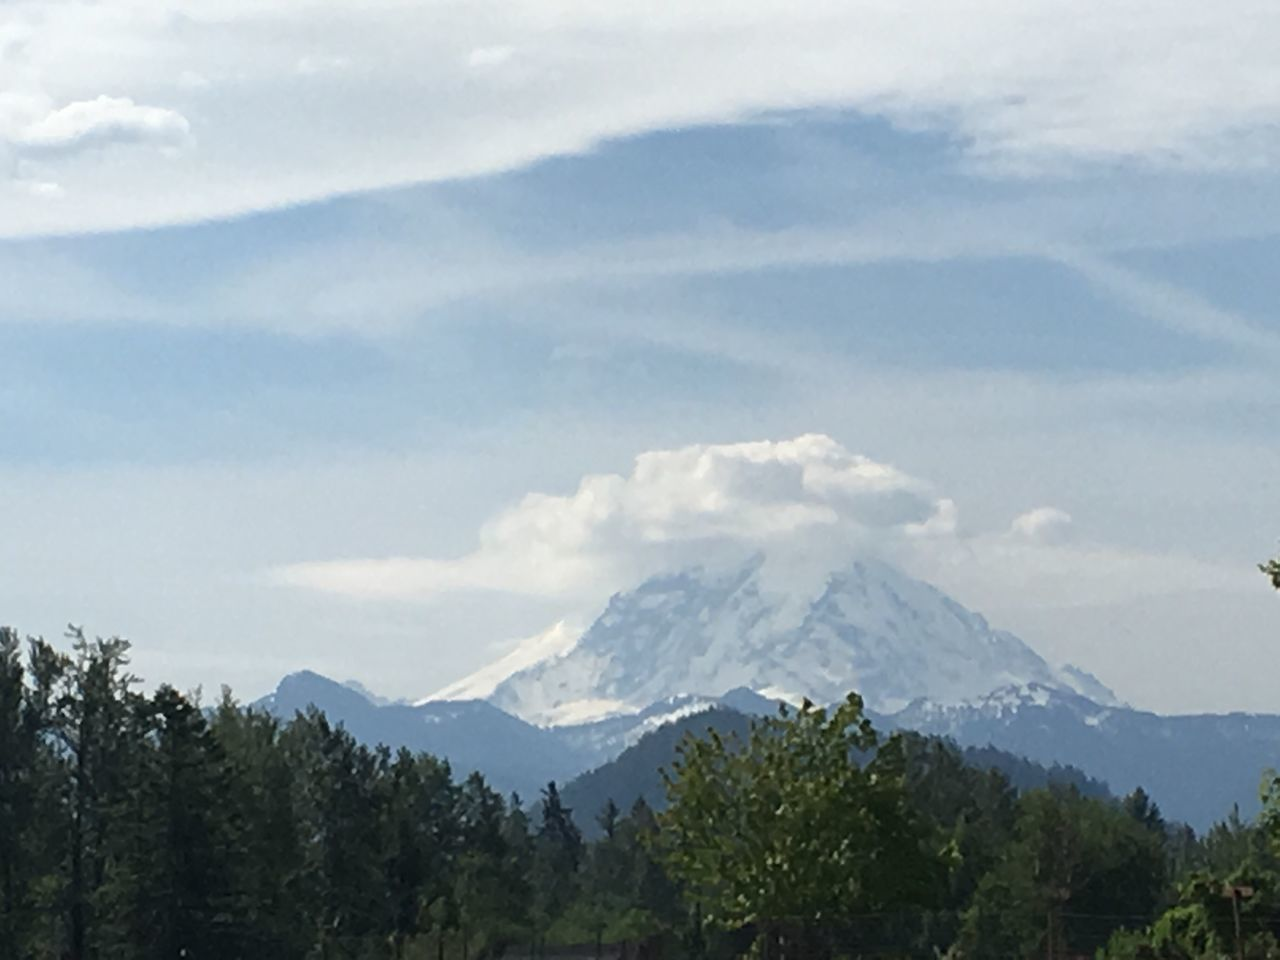 Mountain Beauty In Nature Nature Sky Scenics Tranquility Tranquil Scene Day Landscape No People Mountain Range Outdoors Tree Peak Snow Range Mt.RAINIER Cloud - Sky No Filter, No Edit, Just Photography Beauty In Nature Rural Scene Forest